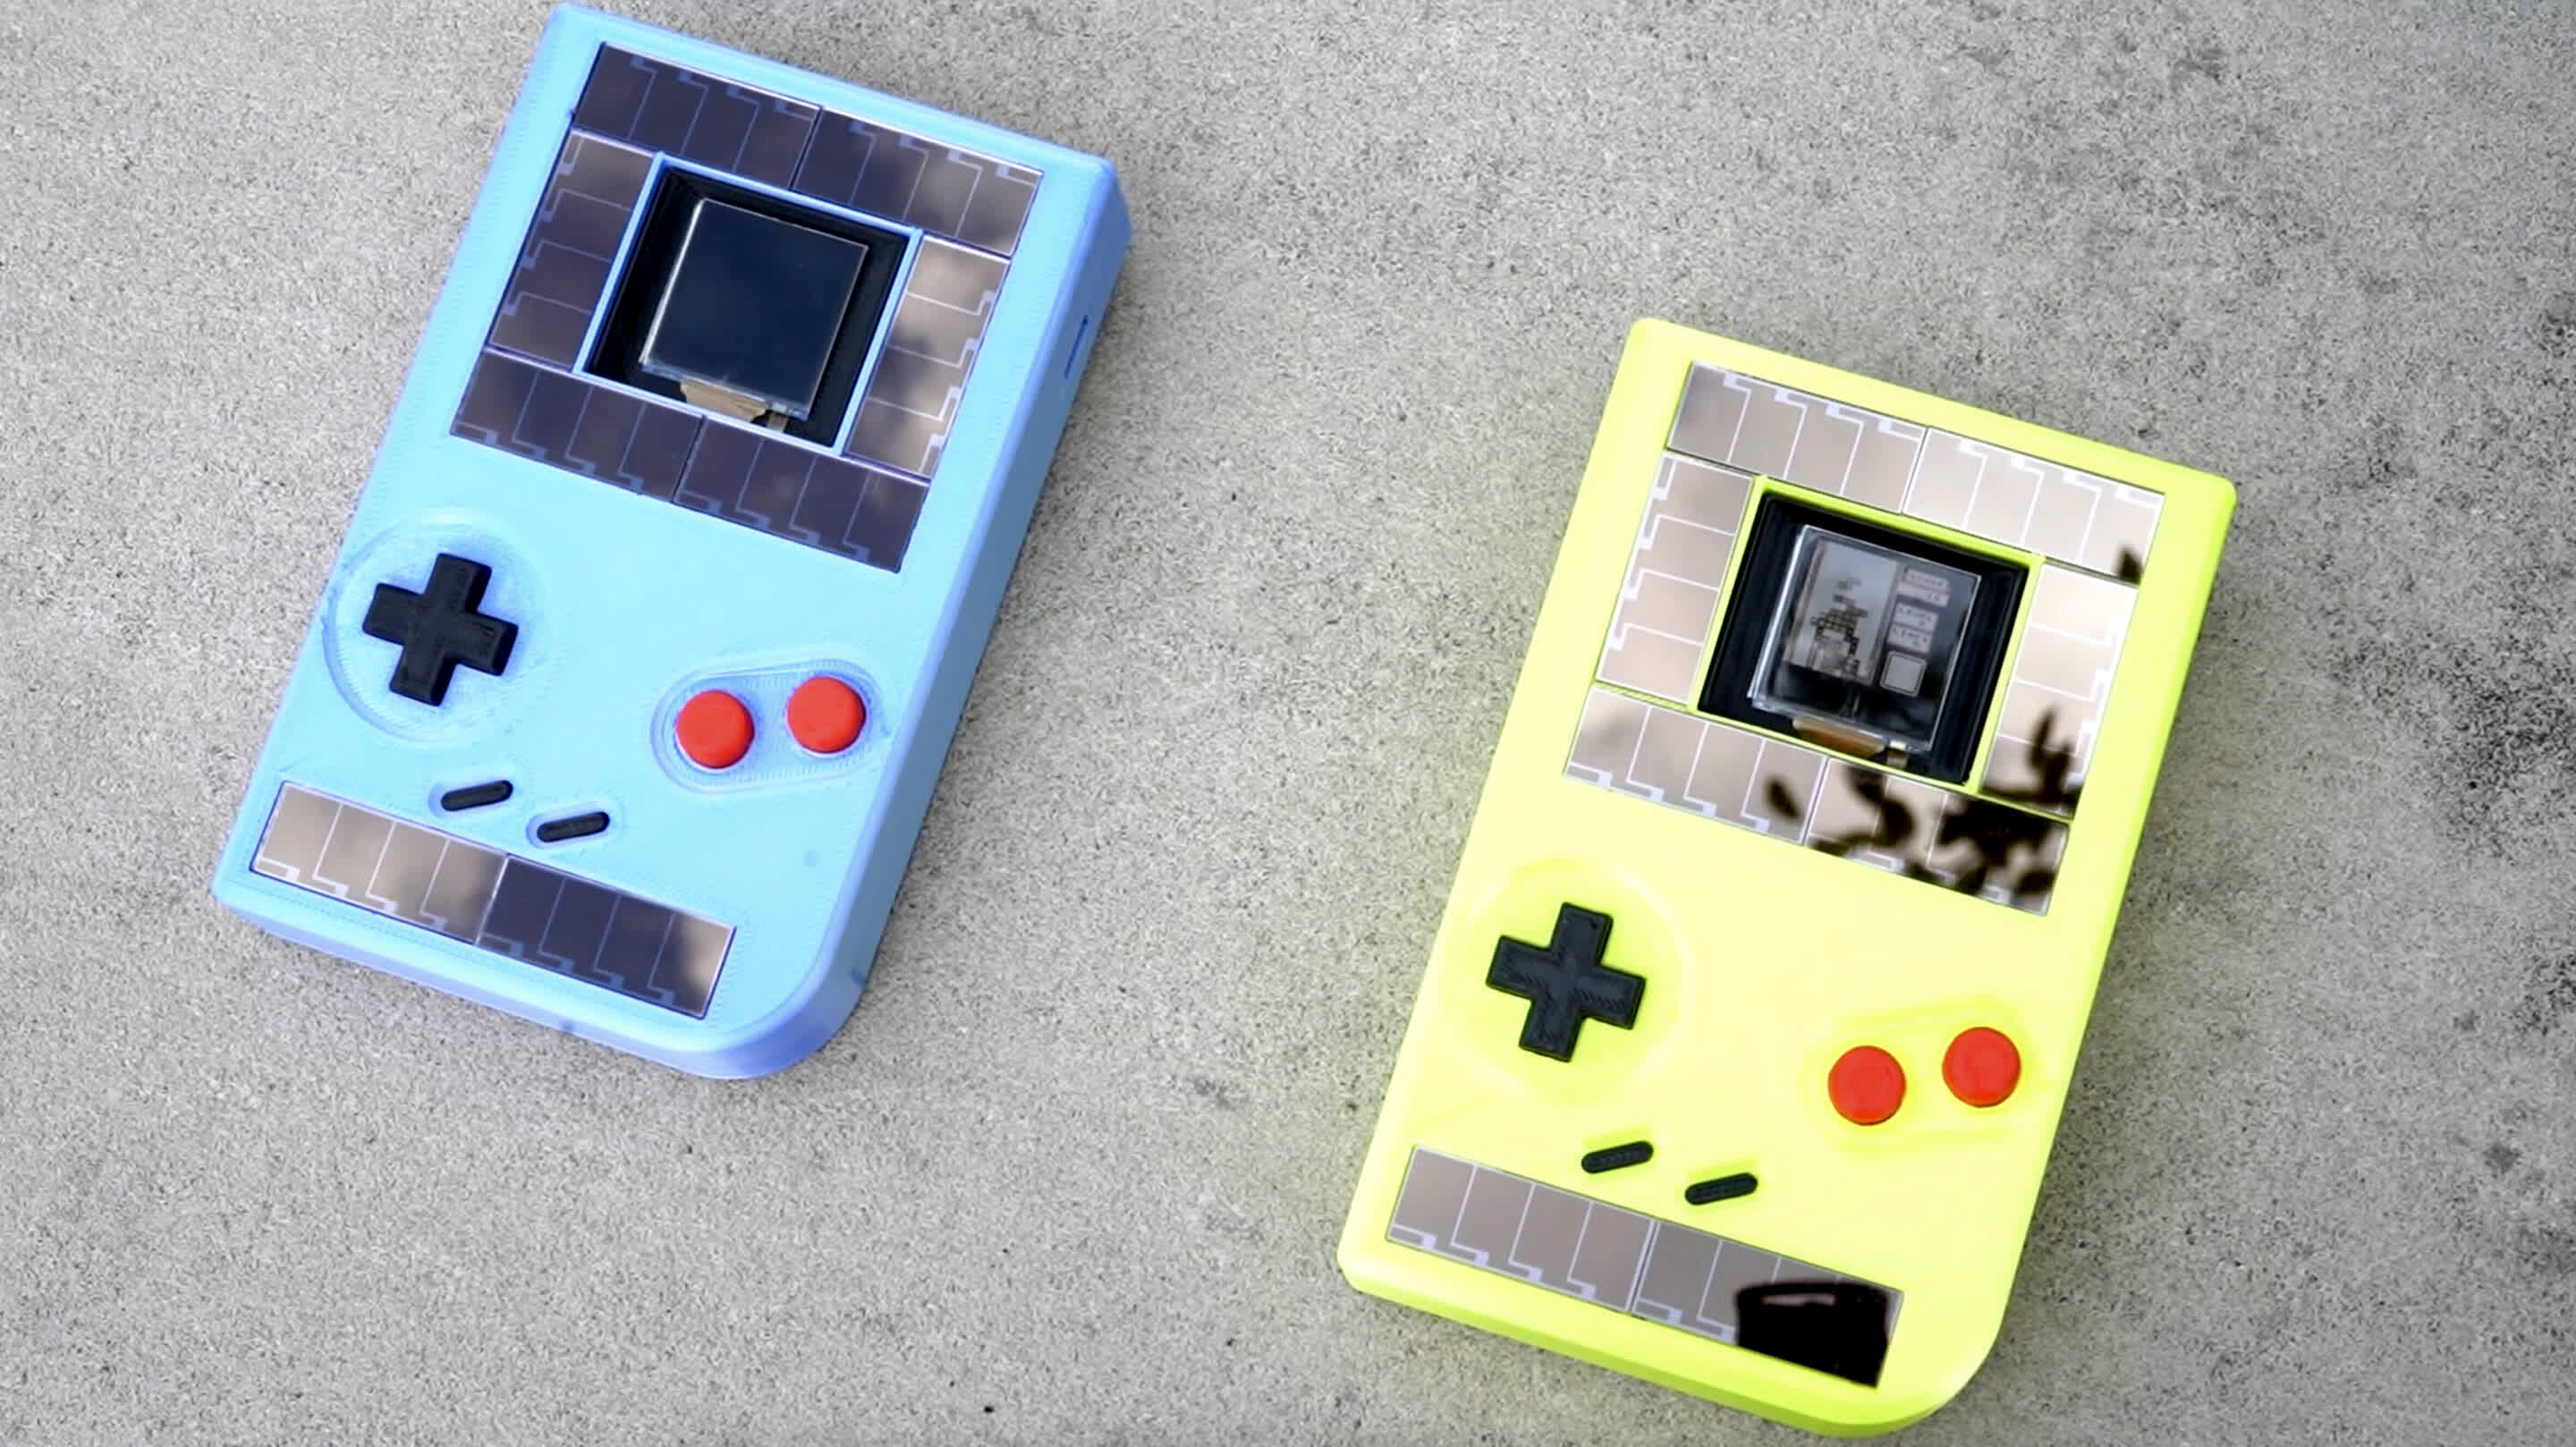 Solar-powered Game Boy can run indefinitely (but shuts down every 10 seconds)